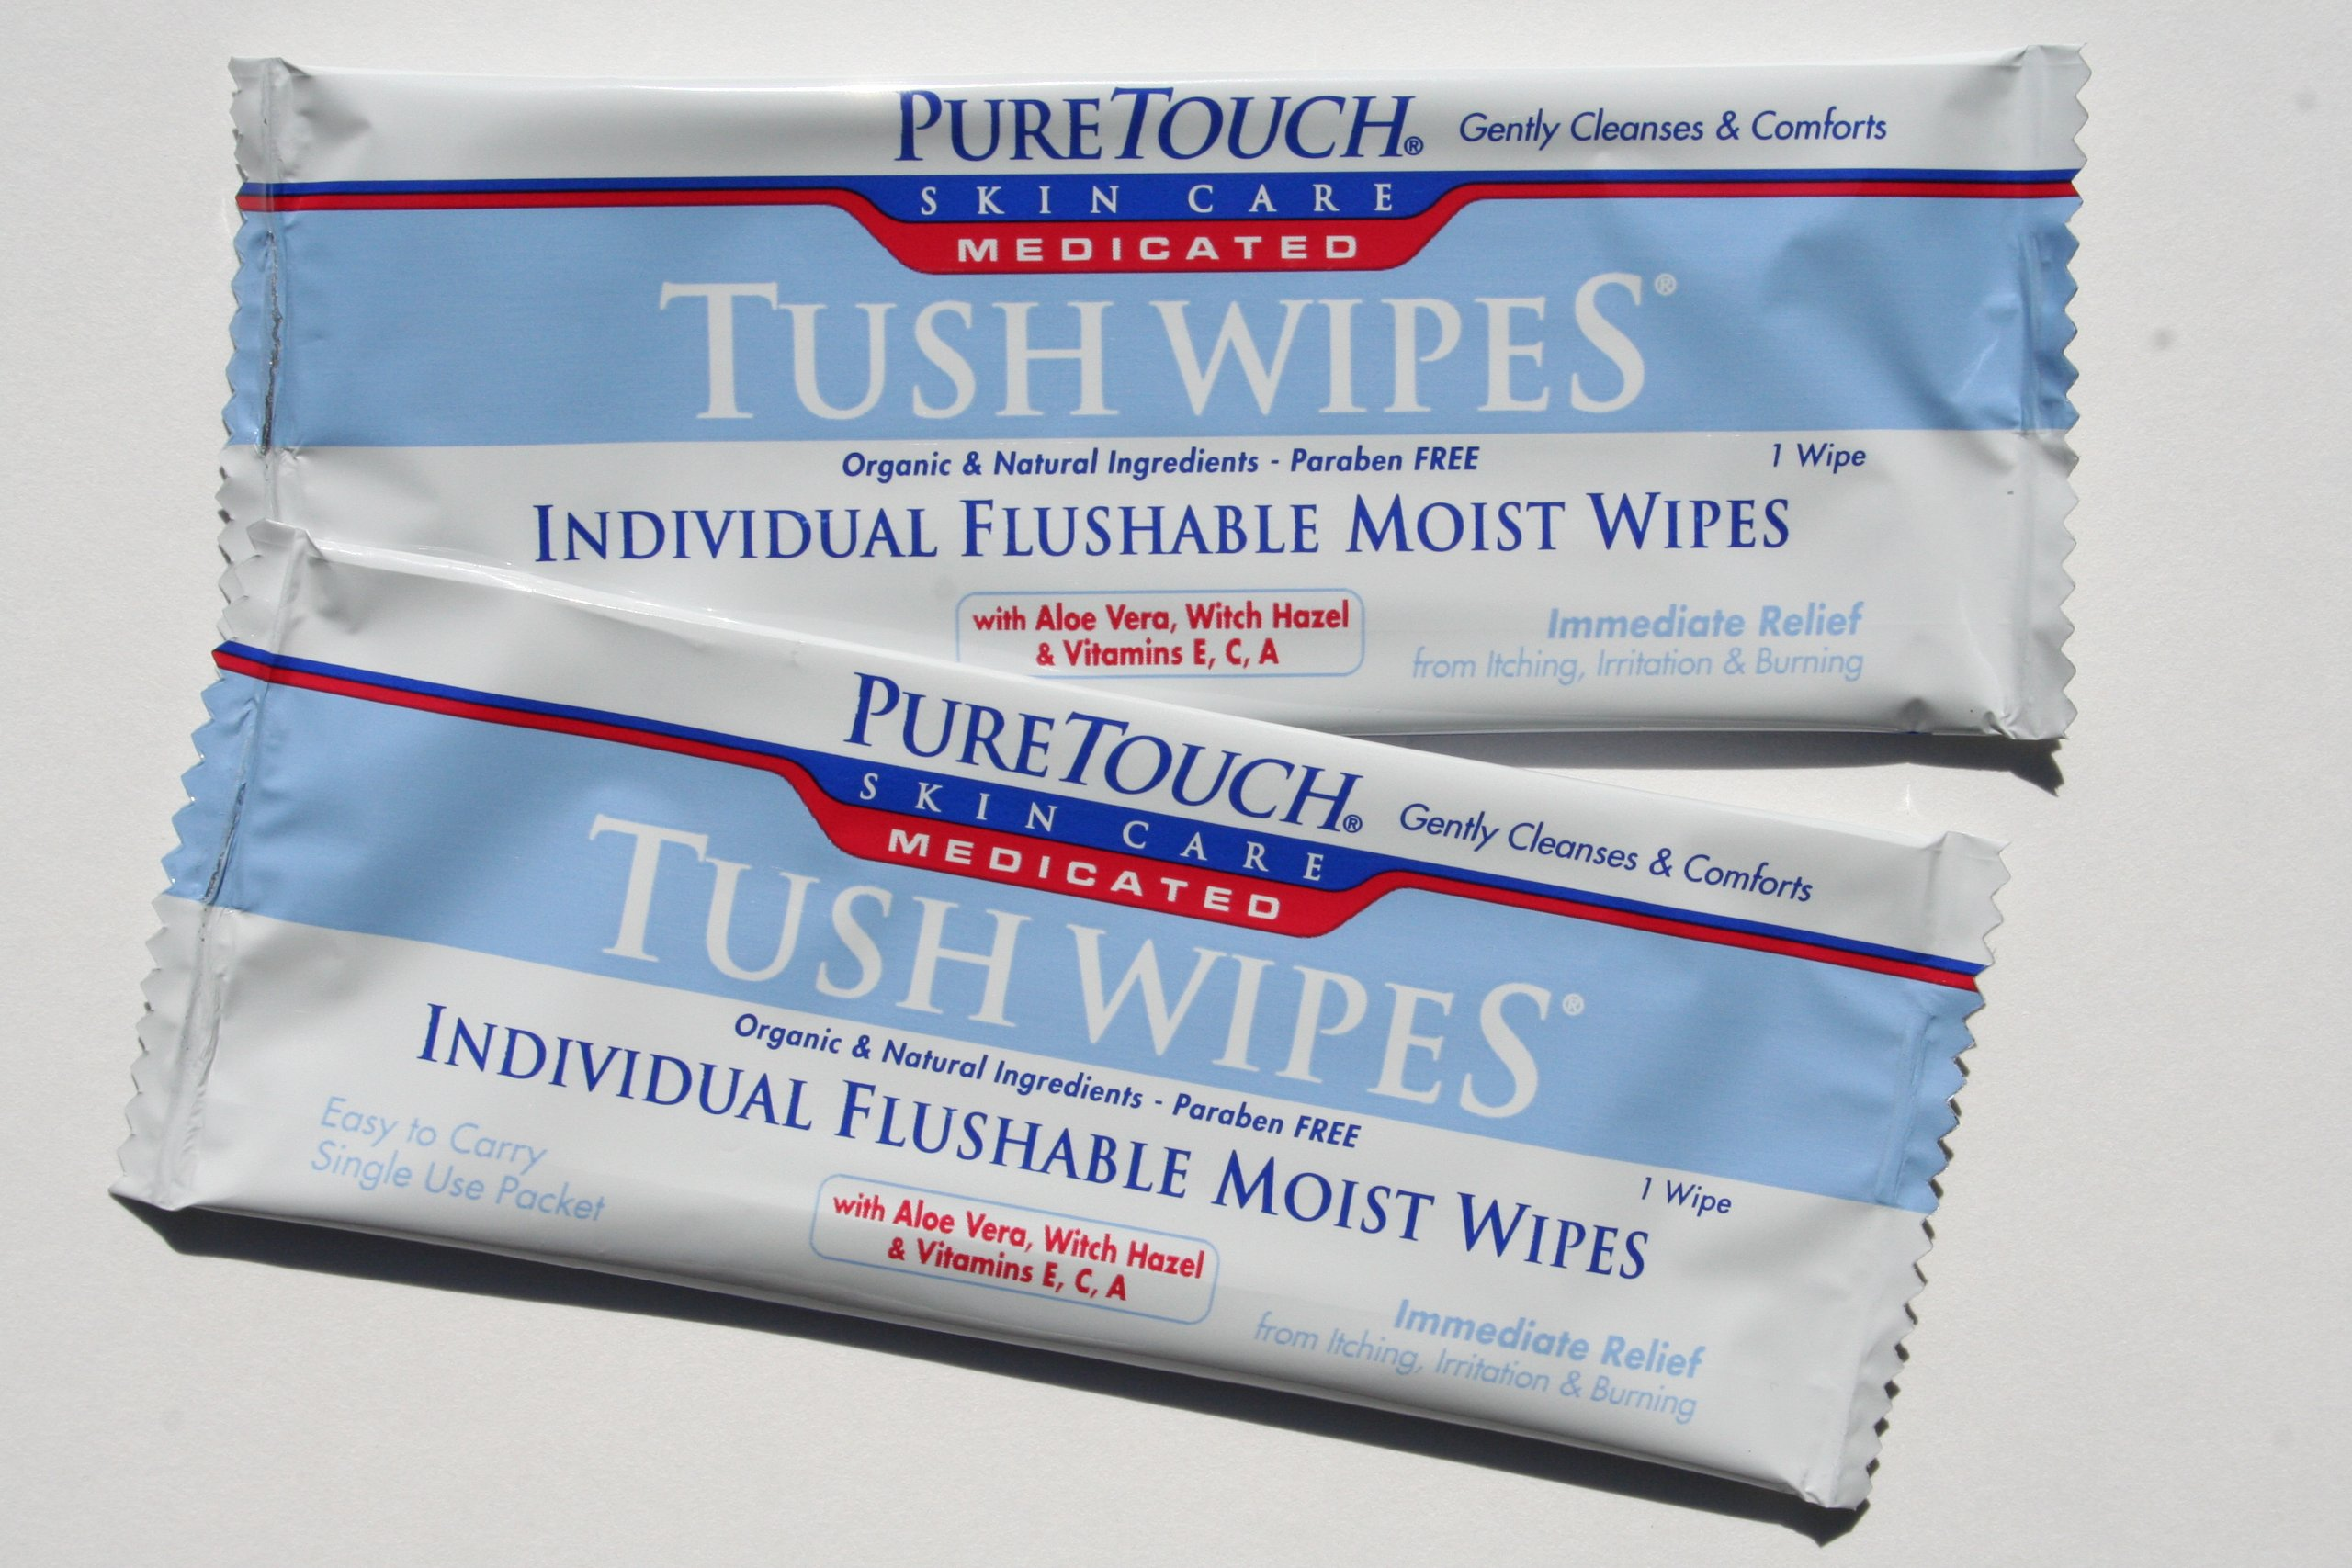 PureTouch MEDICATED Tush Wipes for adults Individual Flushable Moist Wipes BULK 350 Single-Use-